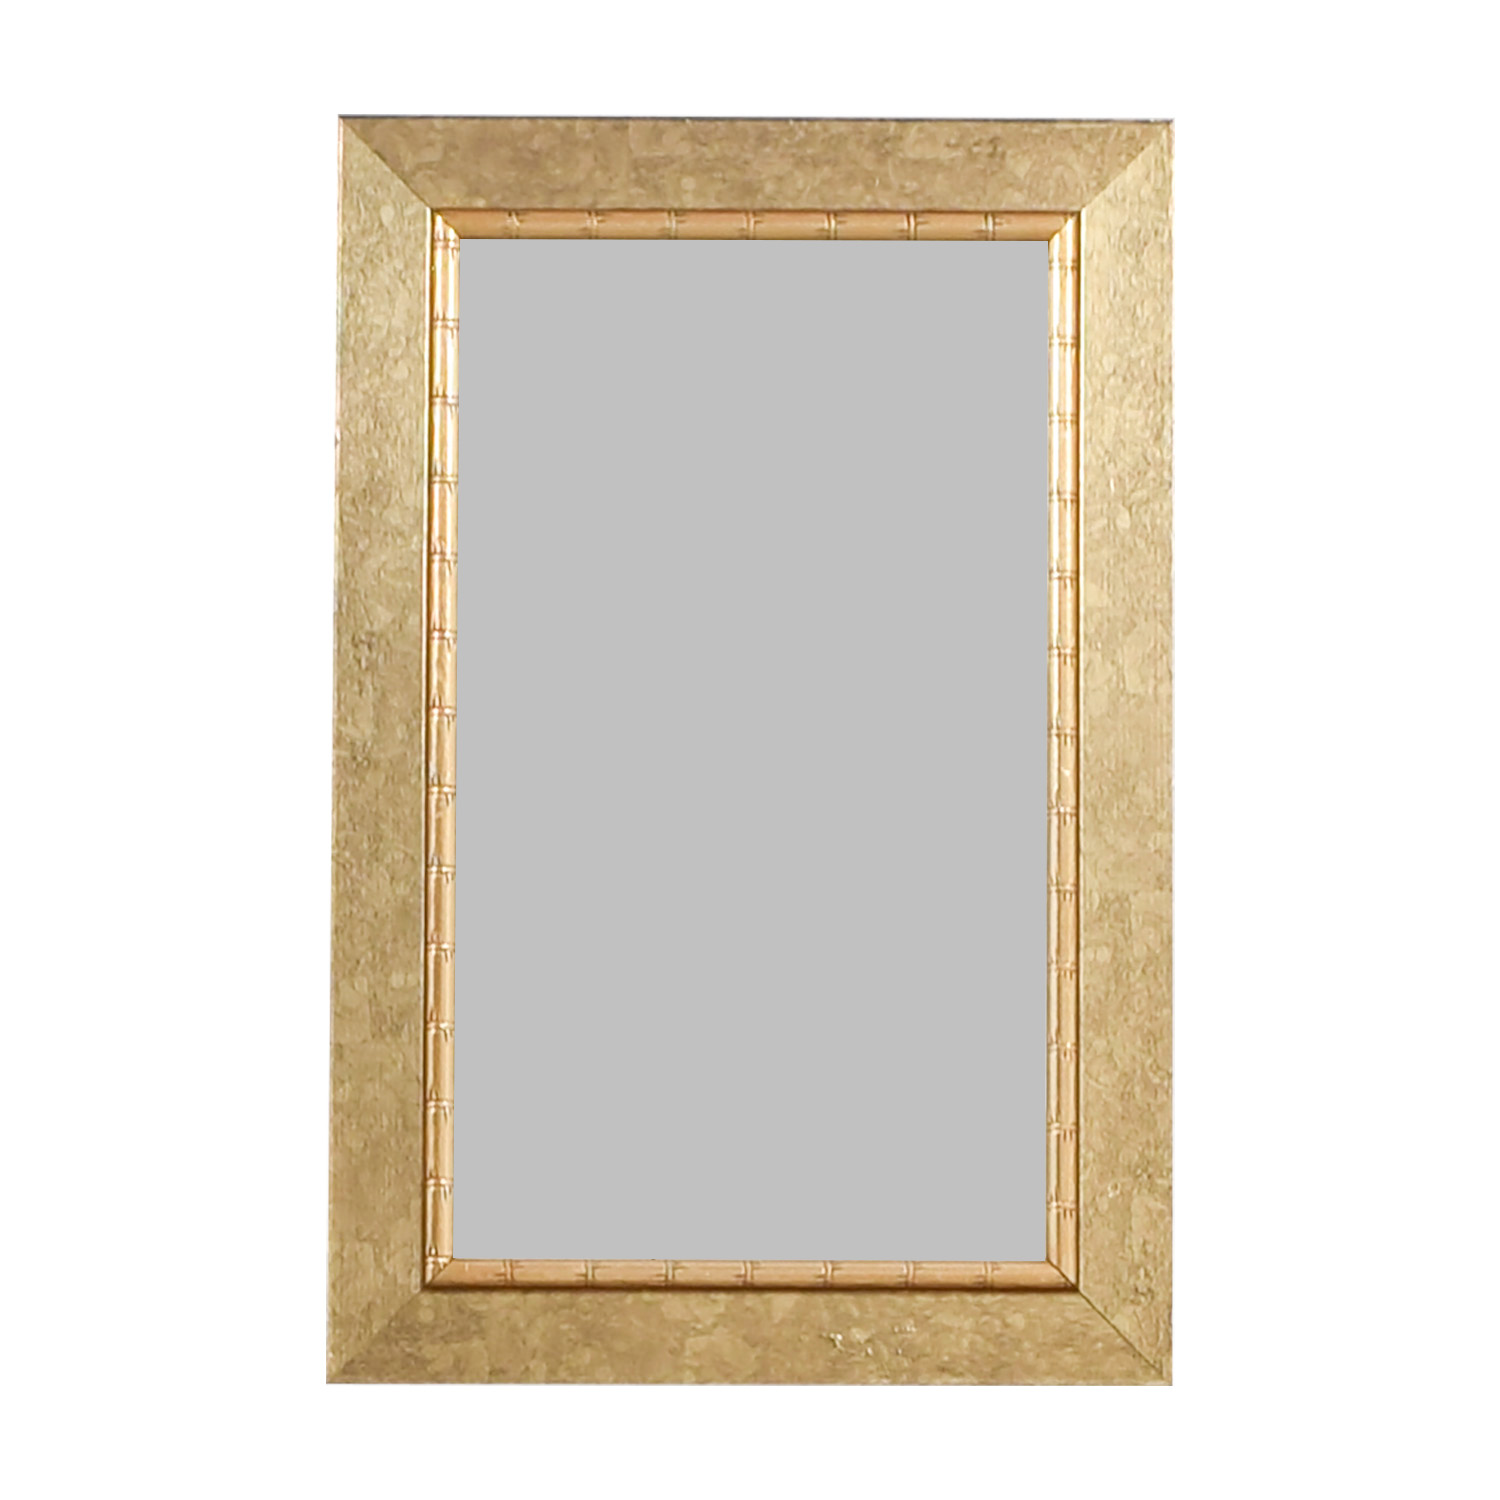 Turner Wall Accessories Turner Wall Accessories Gold Leaf Mirror dimensions